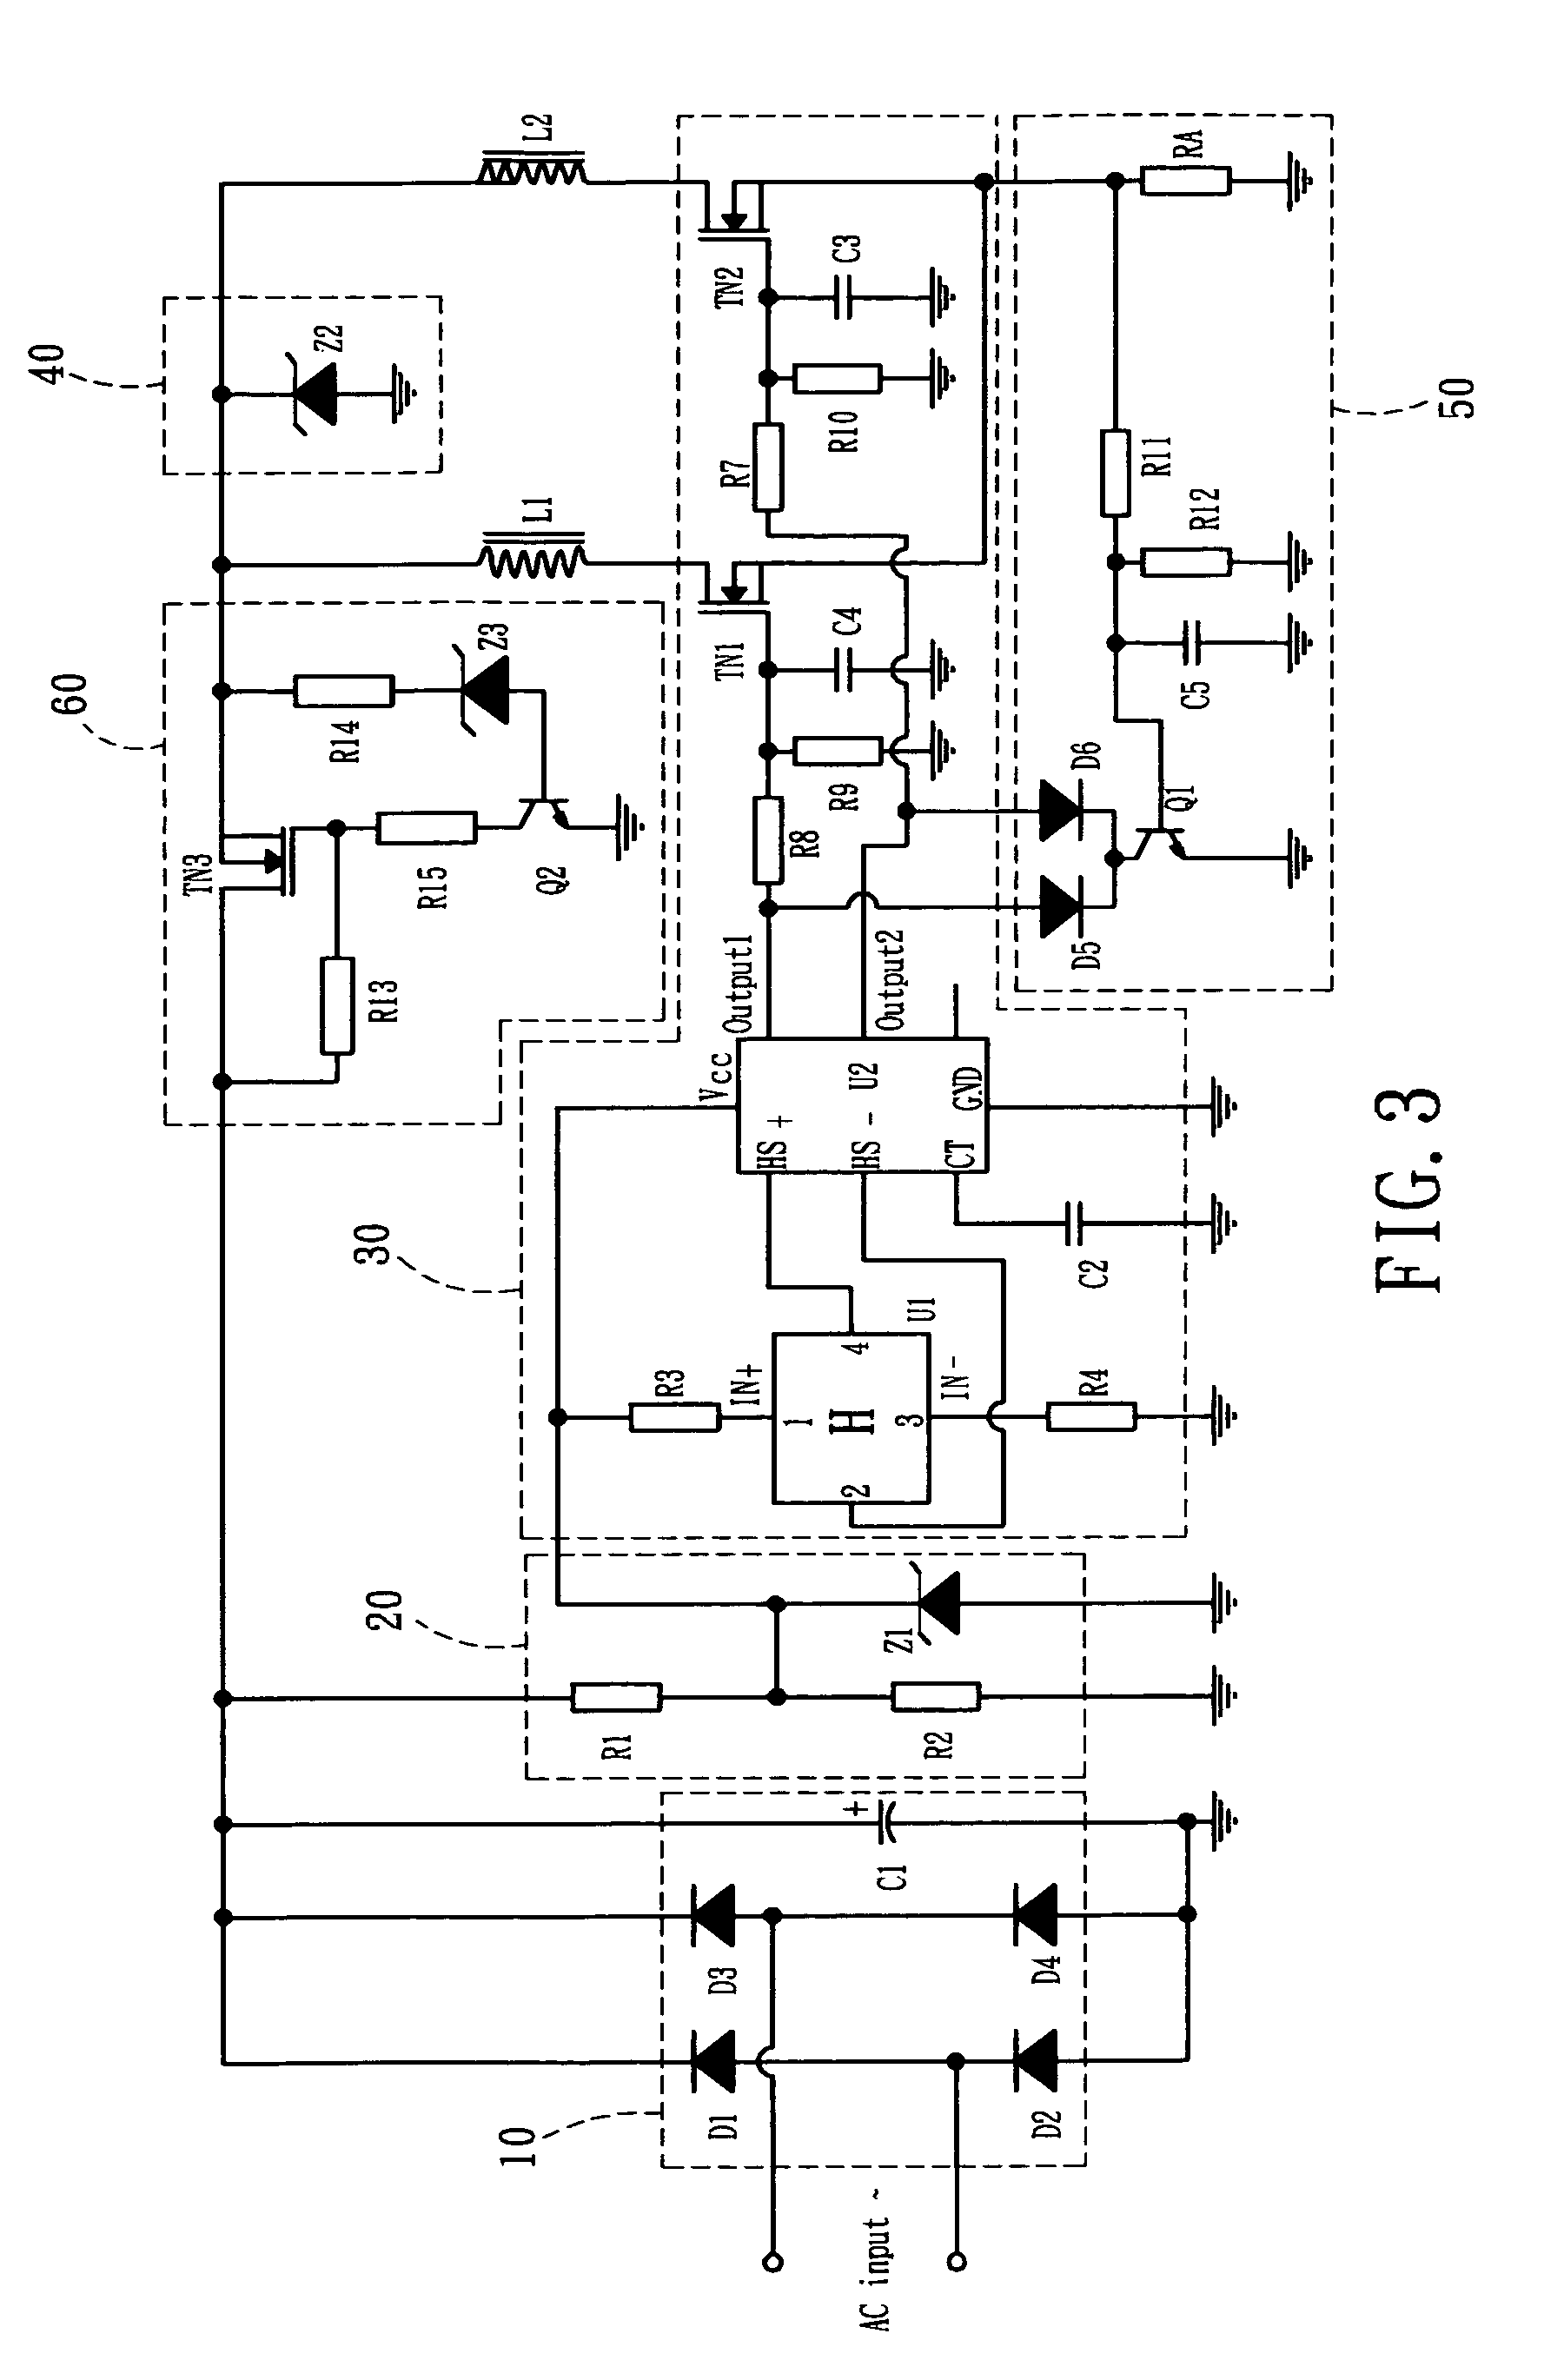 Astonishing mazda 3 power steering pump wiring diagram pictures 2009 mazda rx8 fuse diagram honda cm450 chopper wiring diagram asfbconference2016 Image collections